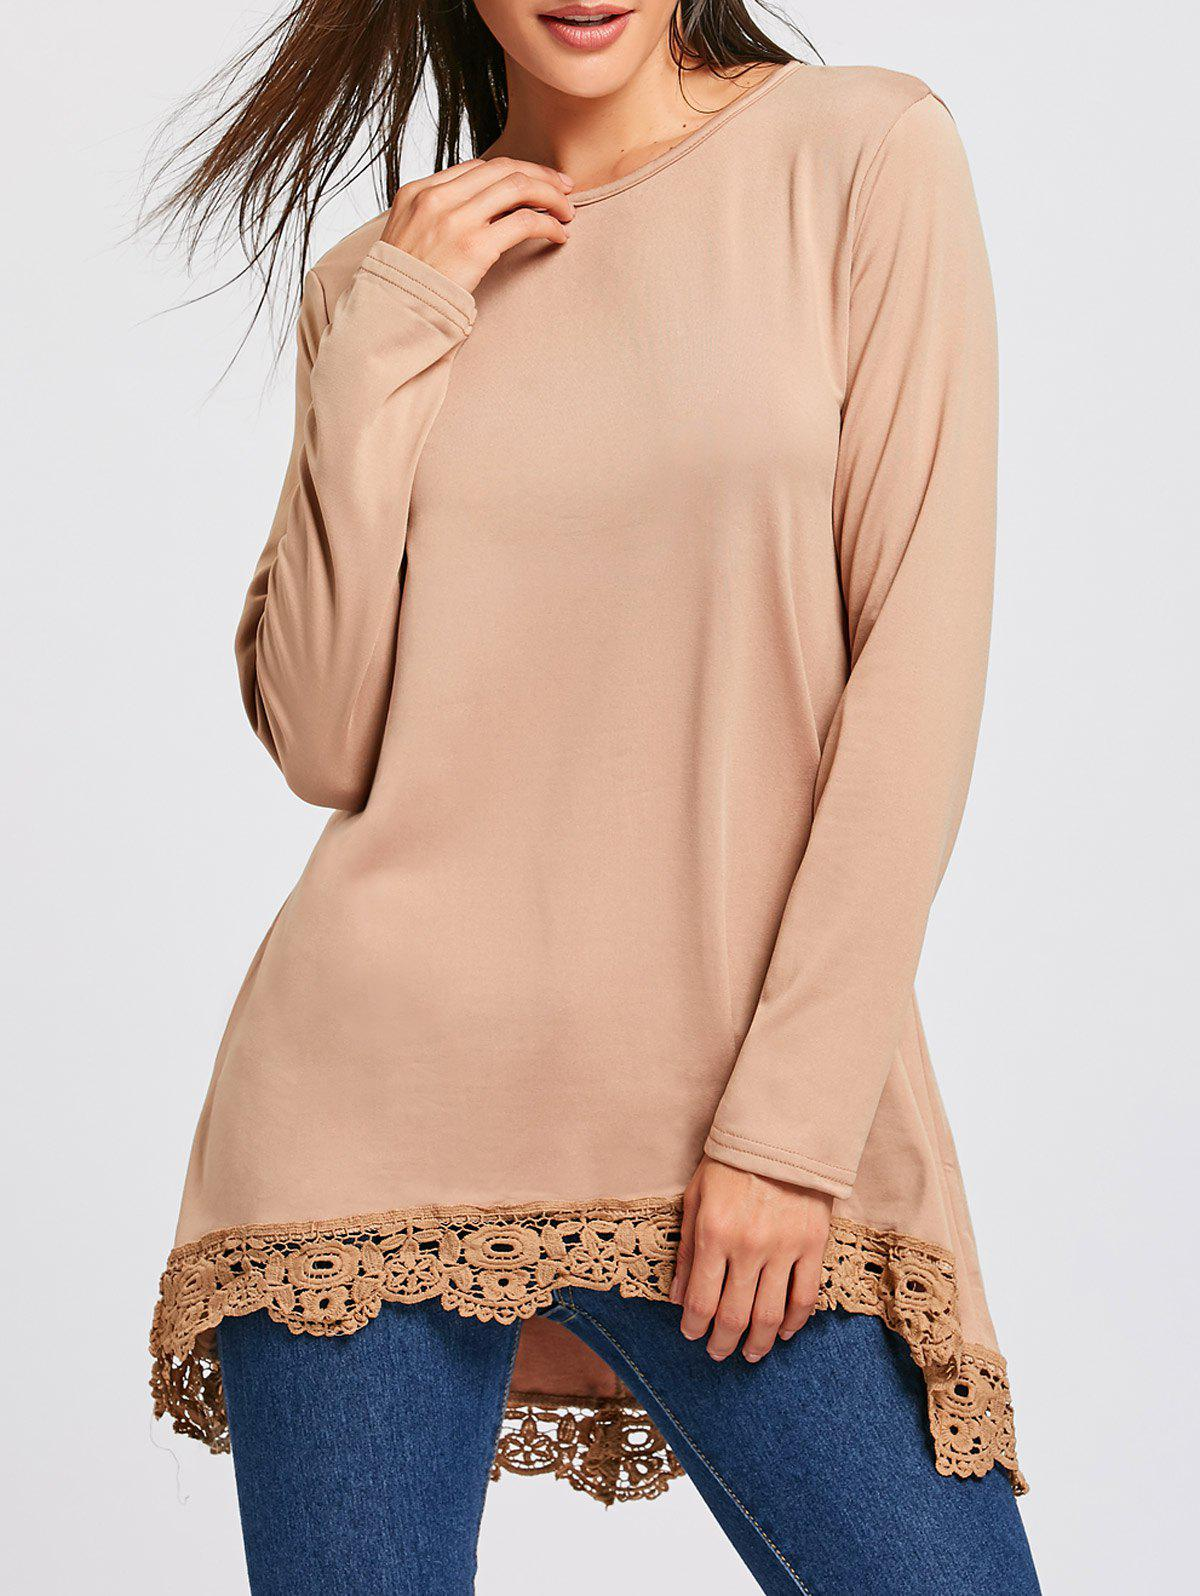 High Low Lace Panel Long Sleeve T-shirtWOMEN<br><br>Size: L; Color: KHAKI; Material: Polyester; Sleeve Length: Full; Collar: Round Neck; Style: Fashion; Pattern Type: Solid; Season: Fall,Spring; Weight: 0.420kg; Package Contents: 1 x T-Shirt;